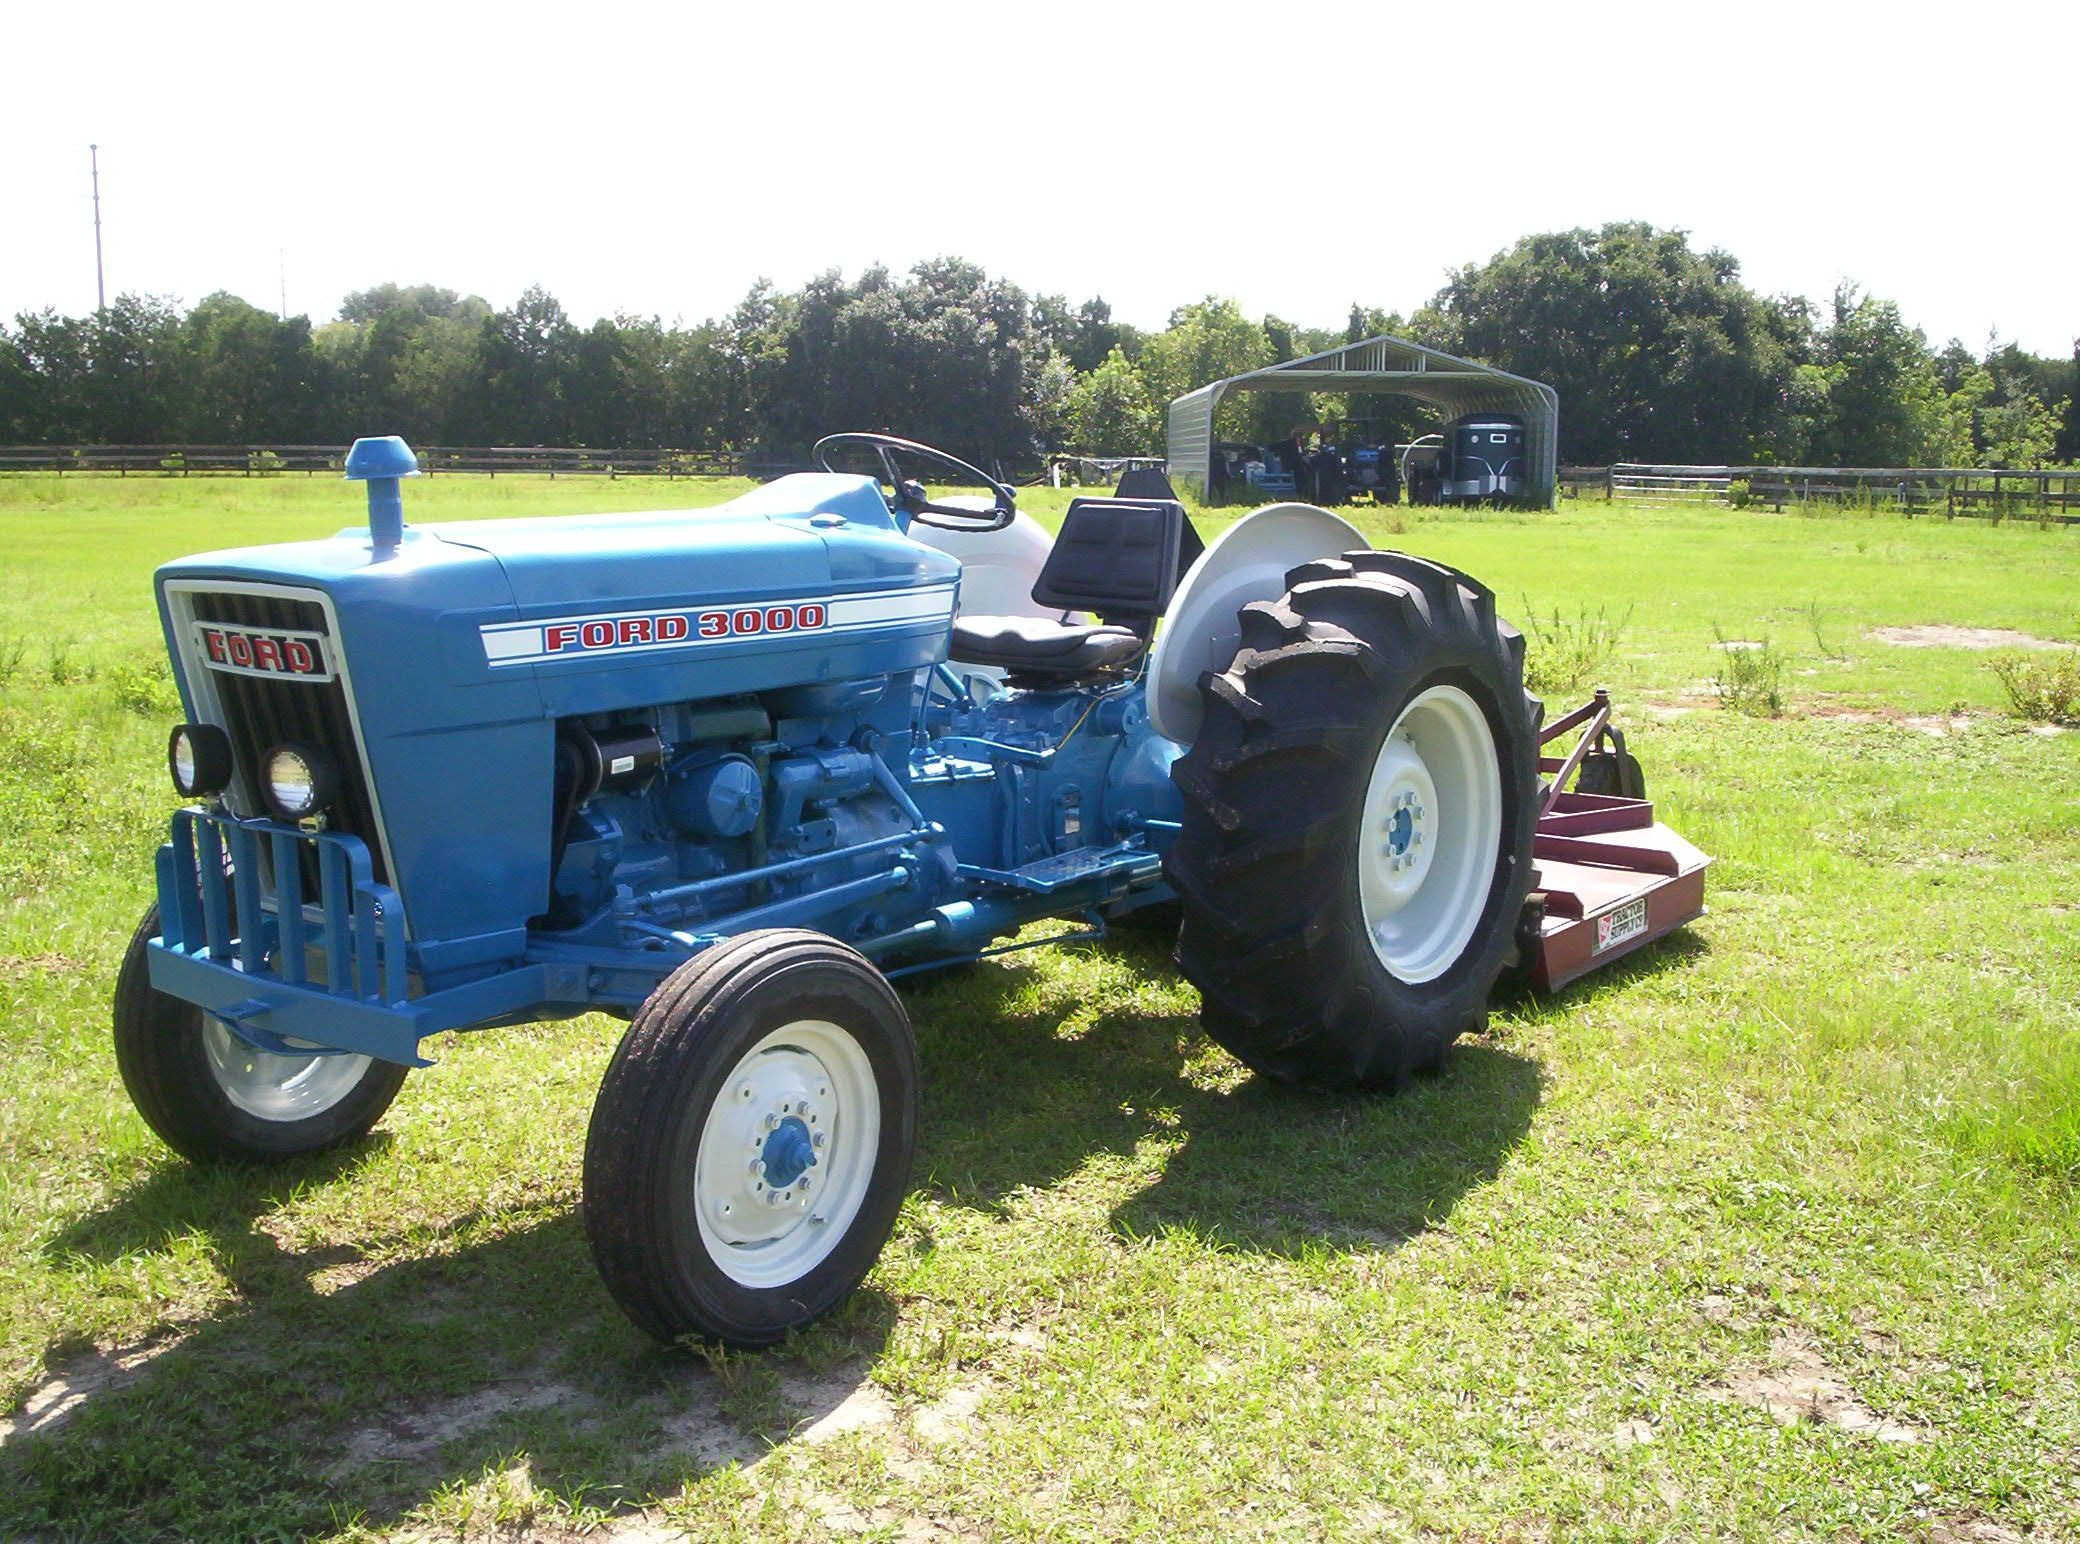 Ford 3600 Tractor Parts Diagram ford 3000 Tractors and Other Farm Equipment Pinterest Of Ford 3600 Tractor Parts Diagram